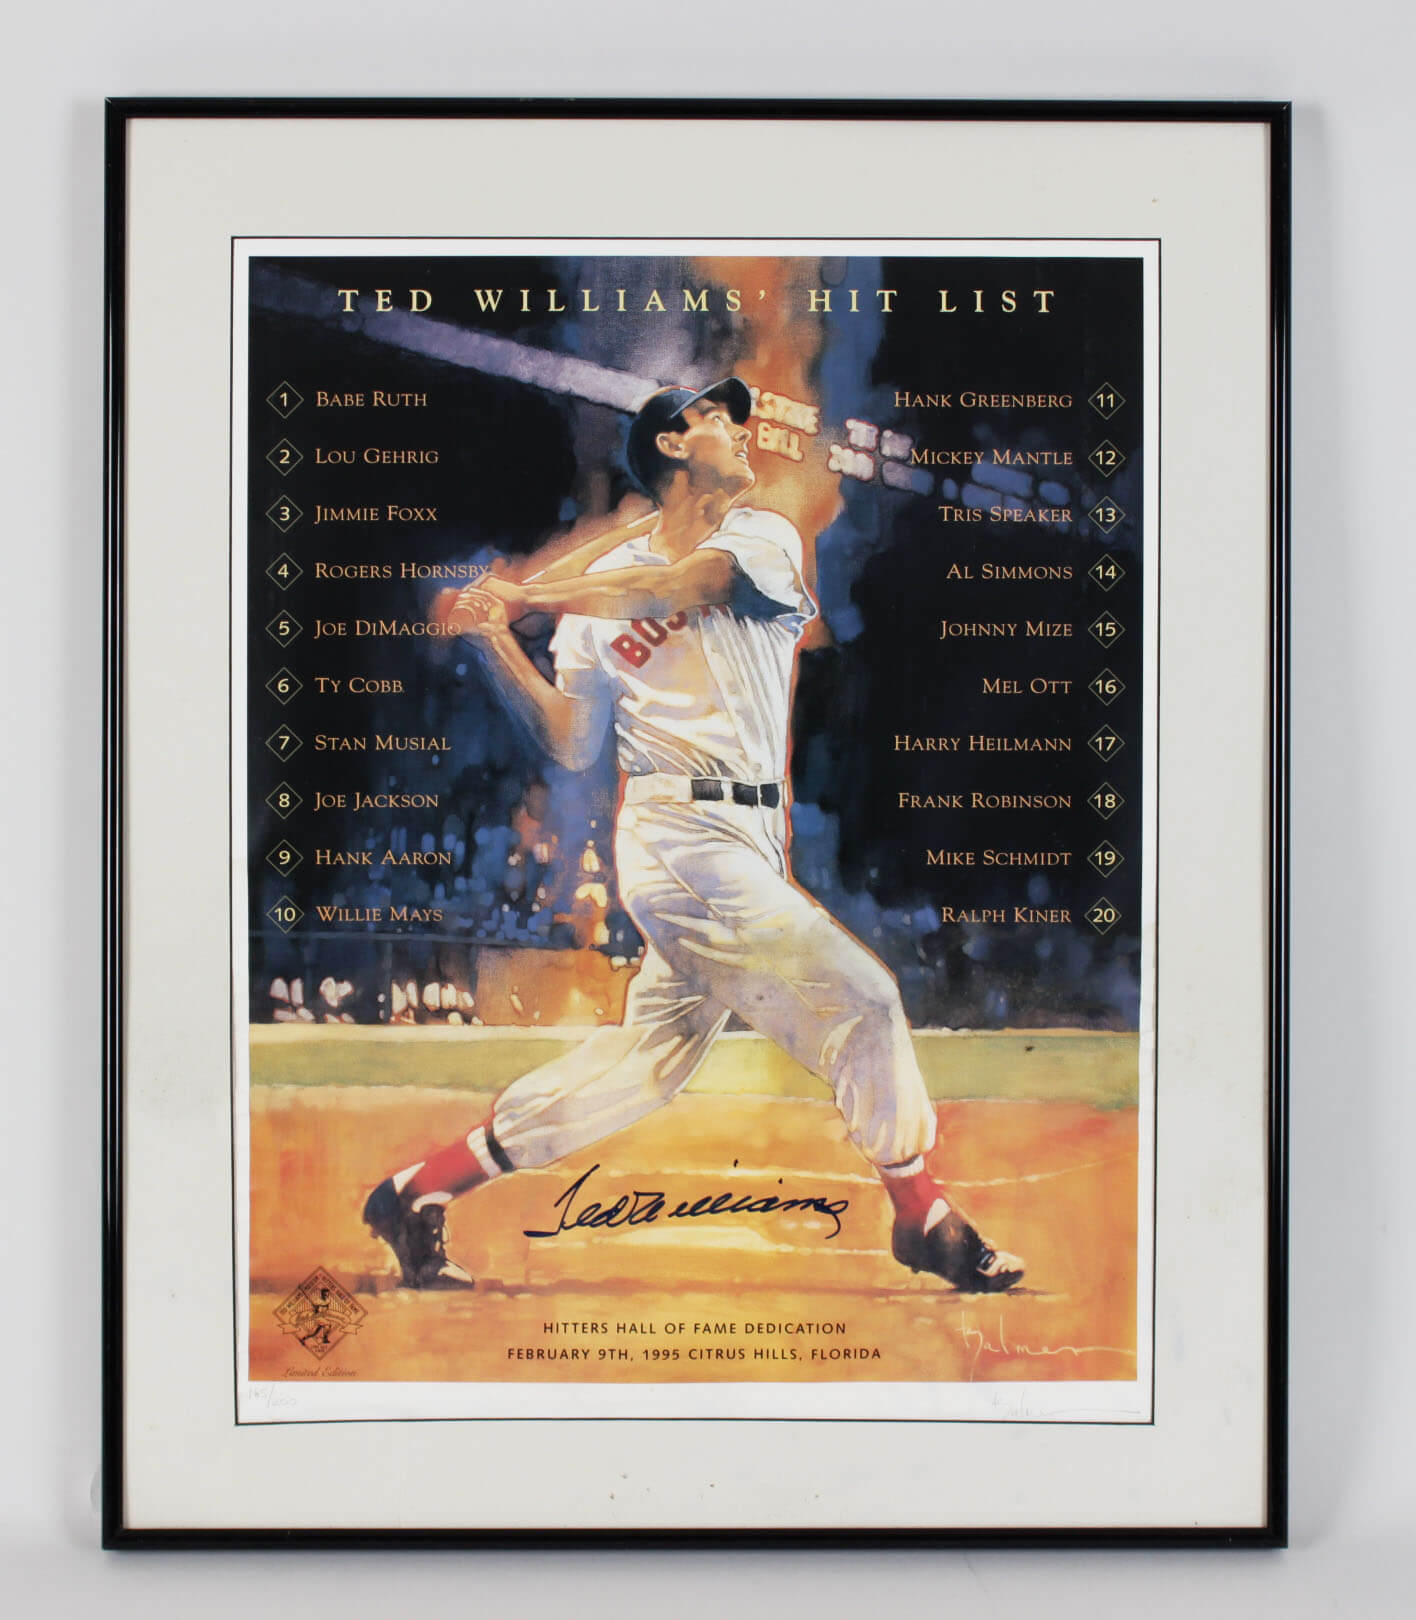 1995 Boston Red Sox - Ted Williams Signed 16x20 Hitters HOF Dedication Poster - JSA